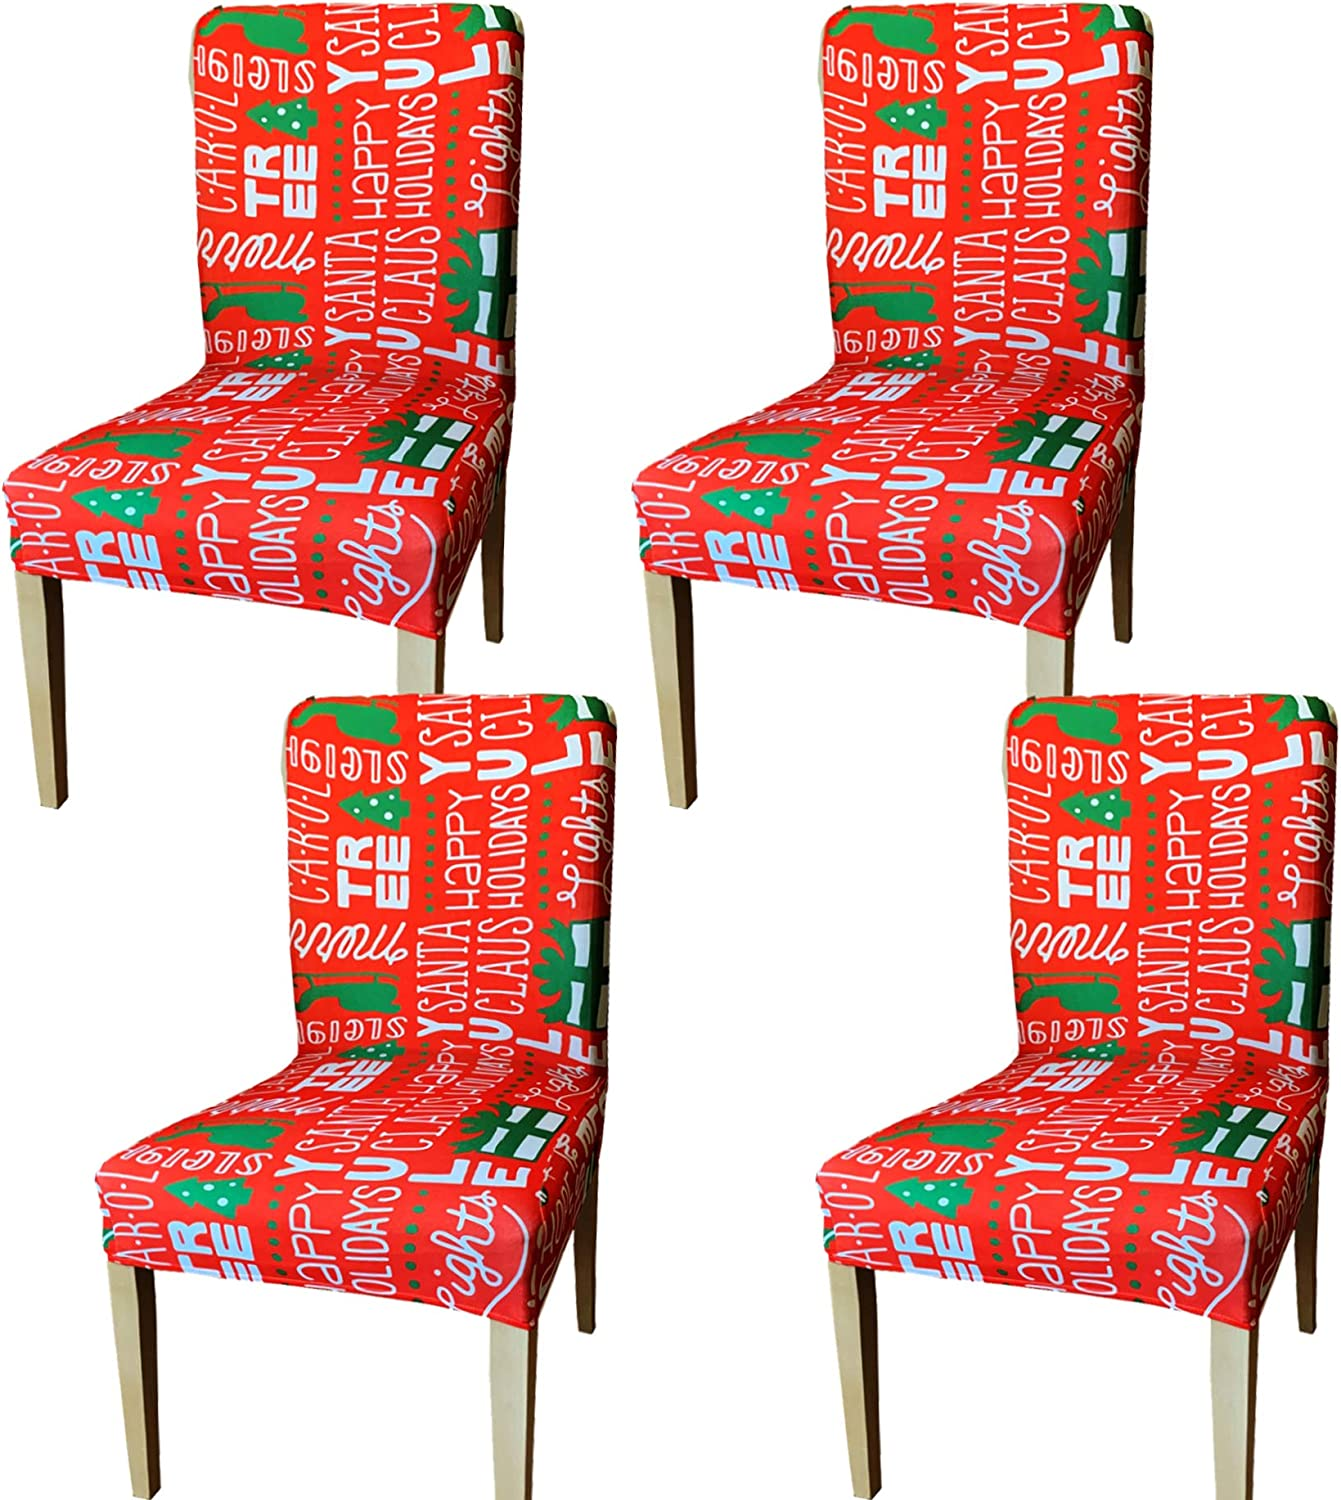 JOYIN 4 Pcs Stretch Chair Covers Christmas Removable Washable Dining Room Chair Protector Slipcovers for Christmas Home Decor Holiday Seat Cover